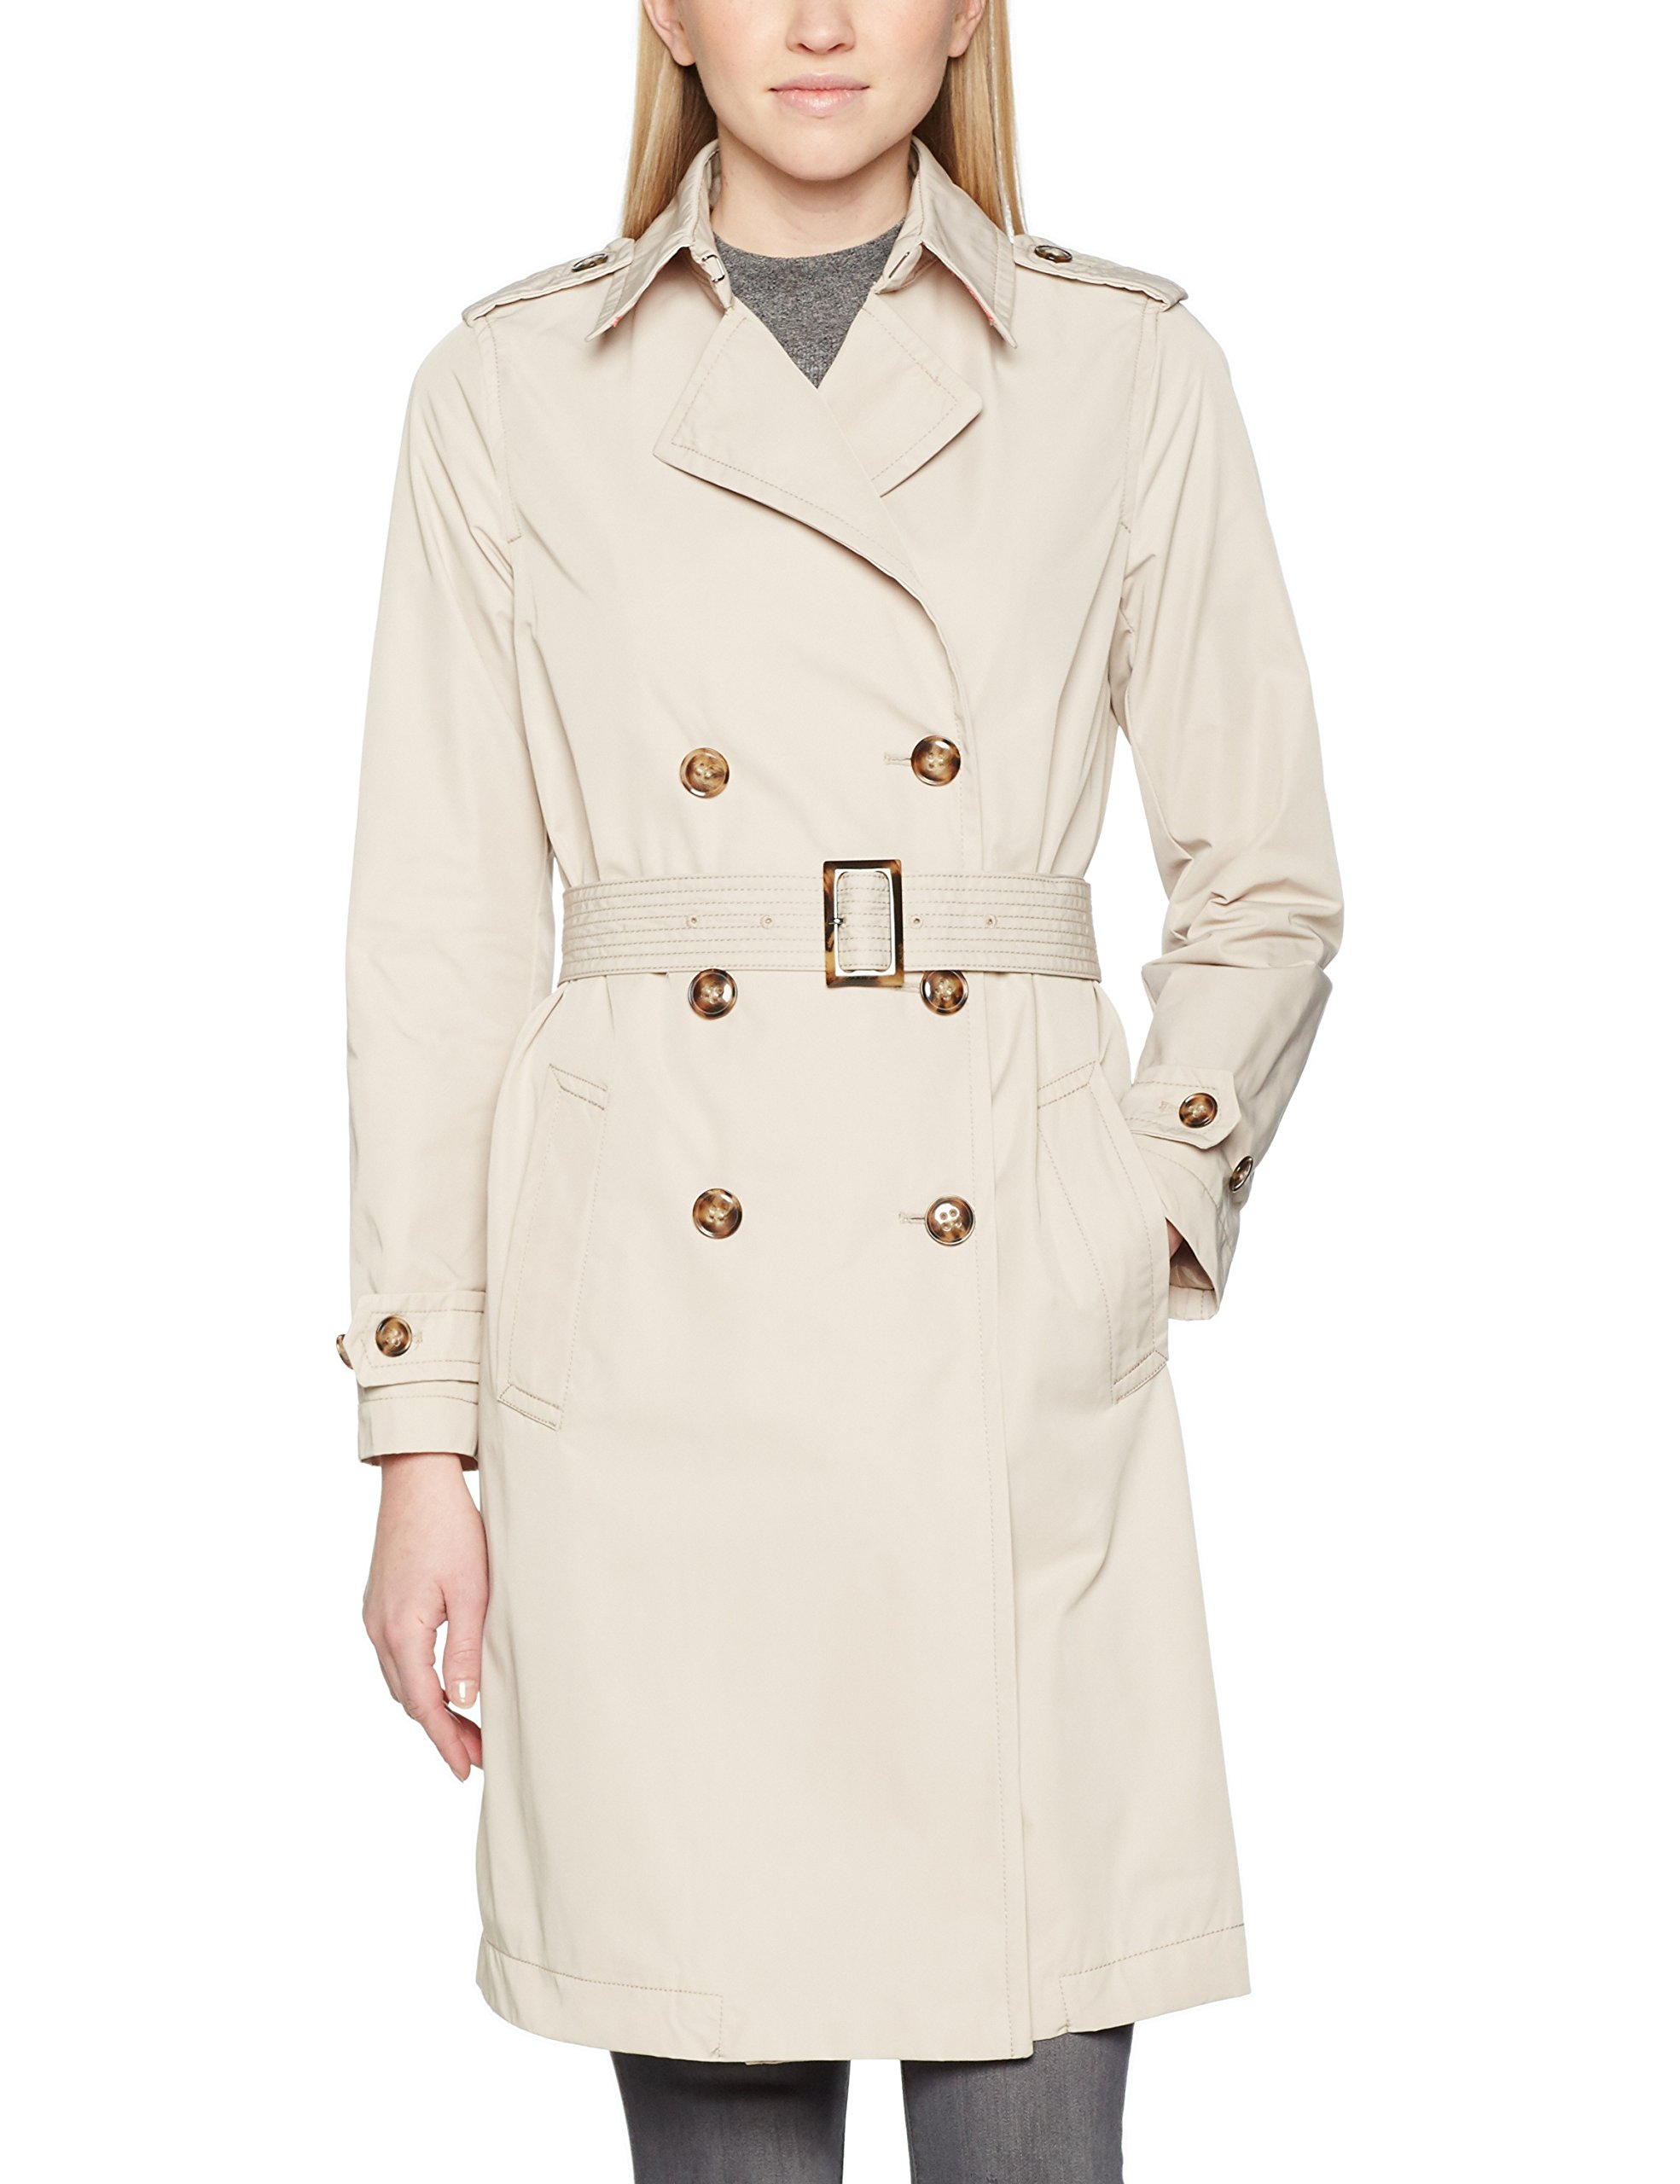 ManteauBeige10taille Trench Belt Fabricant42Femme Coat Benetton Of Colors With United JFT1lcK